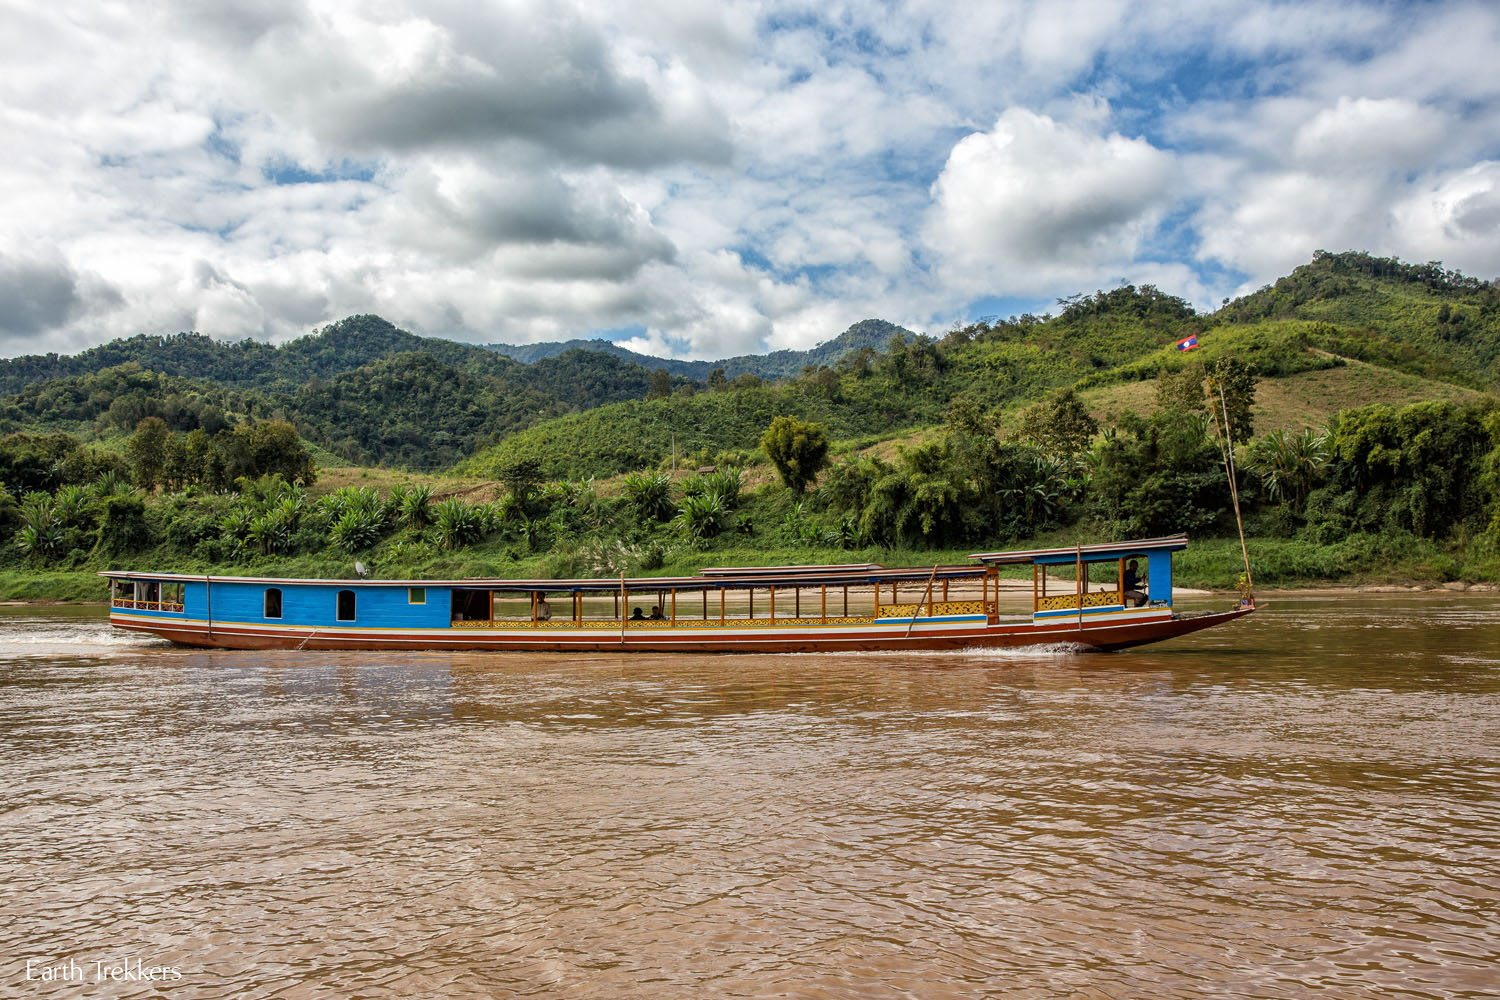 Taking the Slow Boat from Thailand to Laos - Following our Feet